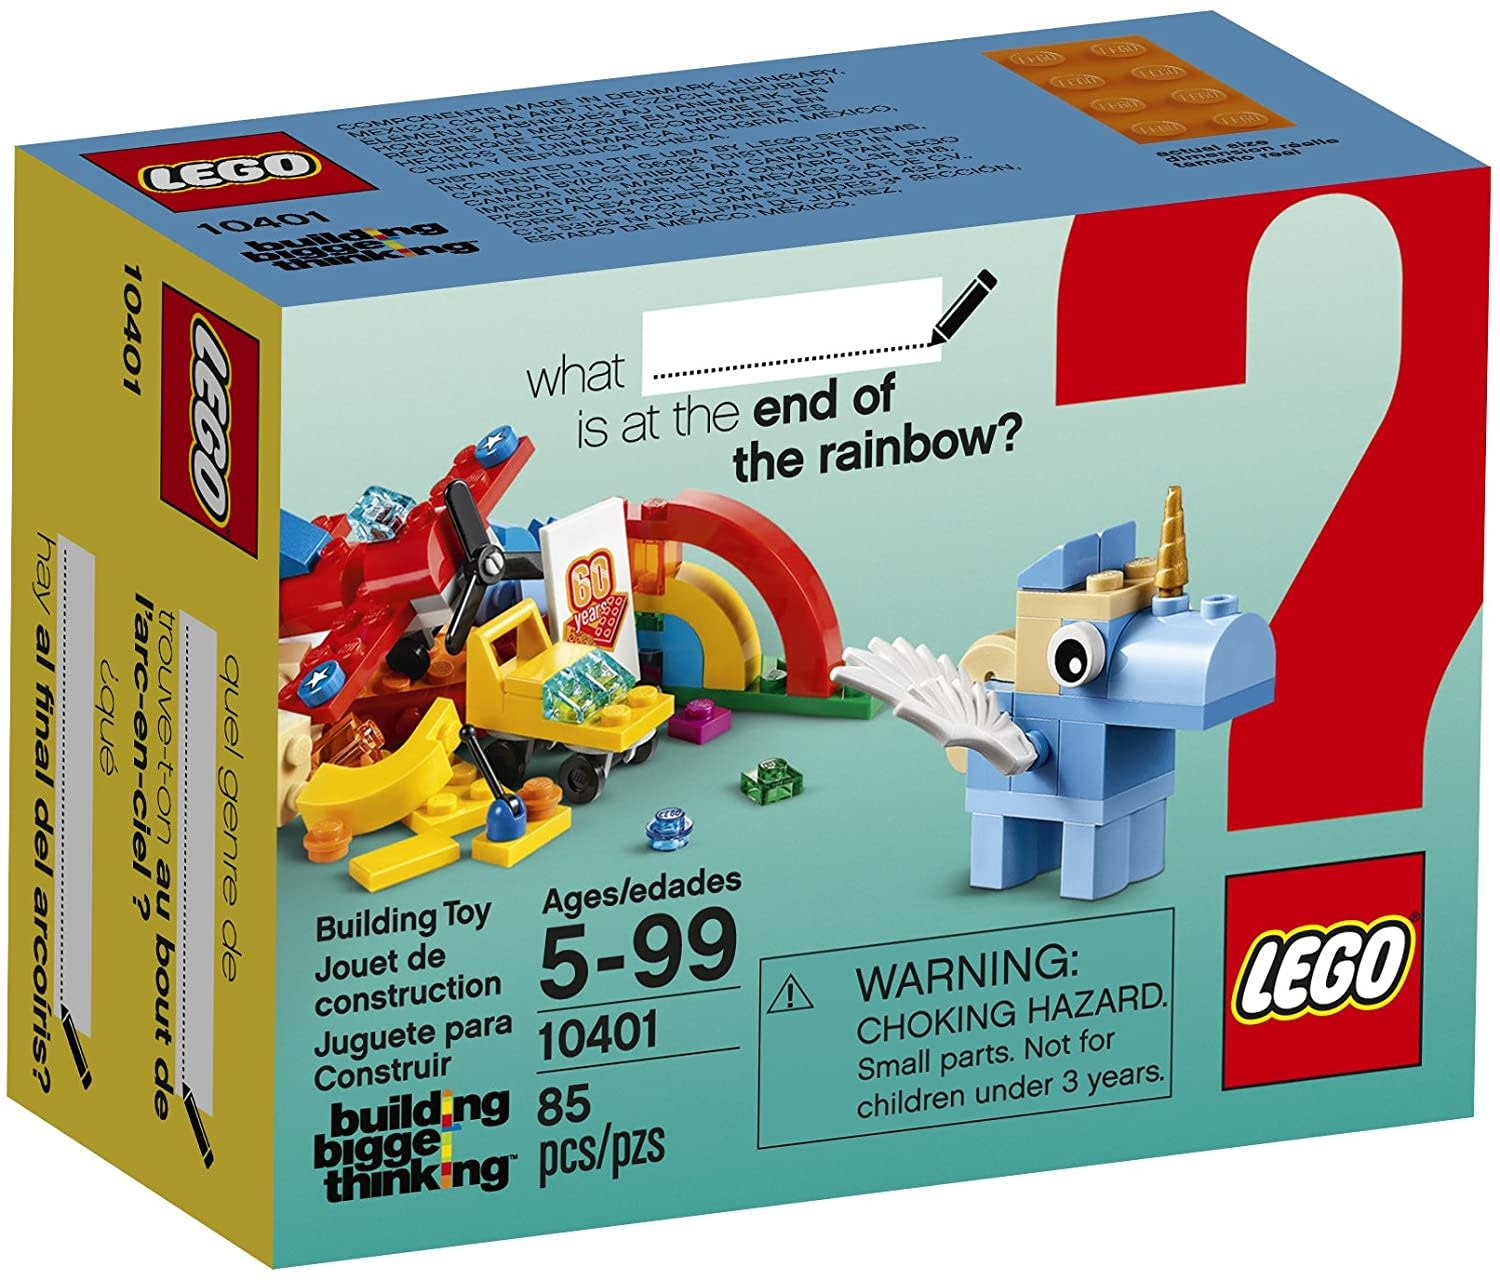 LEGO Classic LEGO Classic Classic Rainbow Fun 10401 Building Kit  Roll over image to zoom in LEGO Classic Classic Rainbow Fun - Building Kit